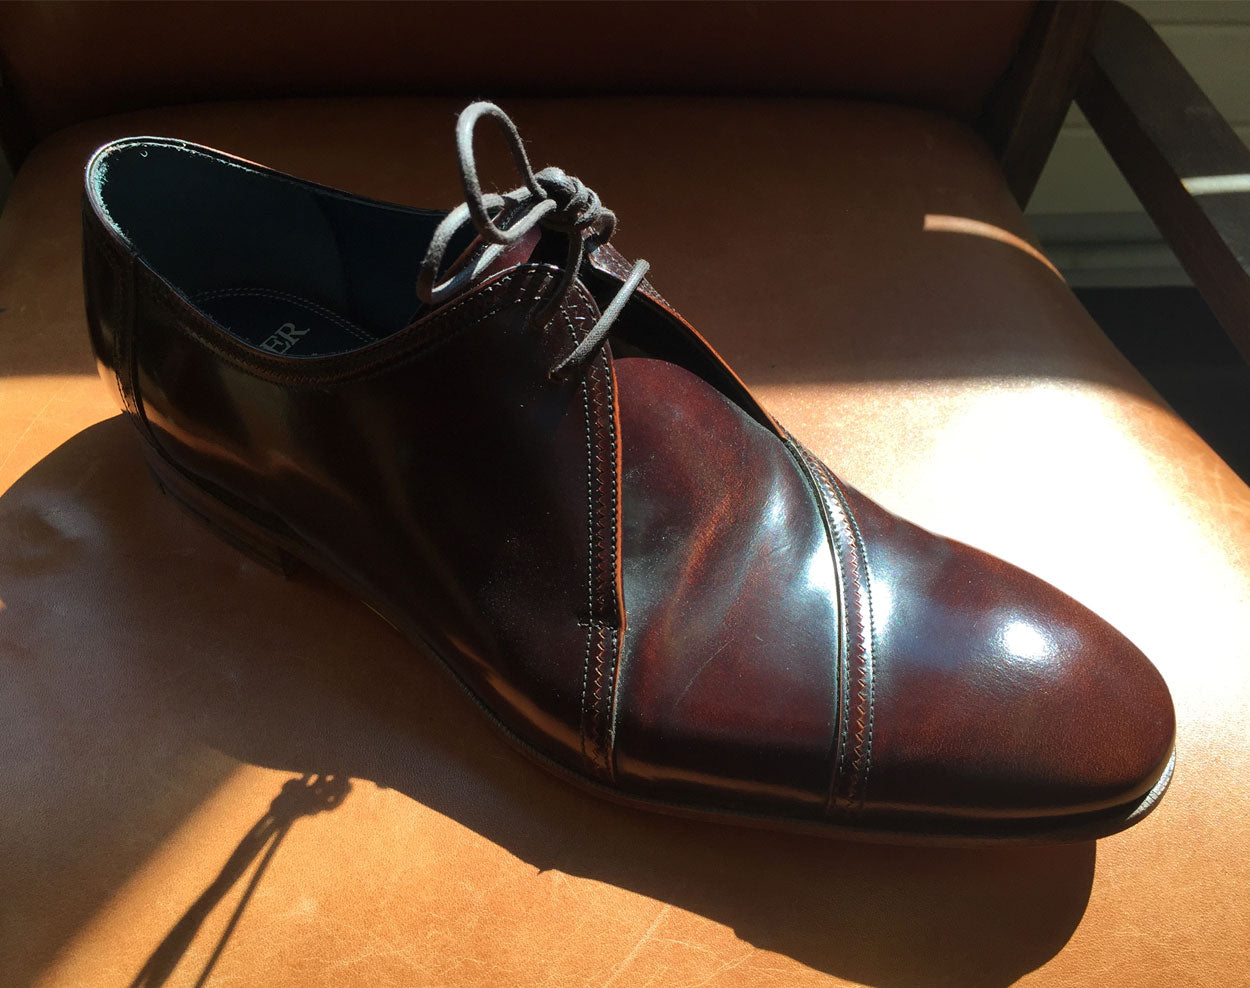 A visit to the Barker shoe factory outlet shop